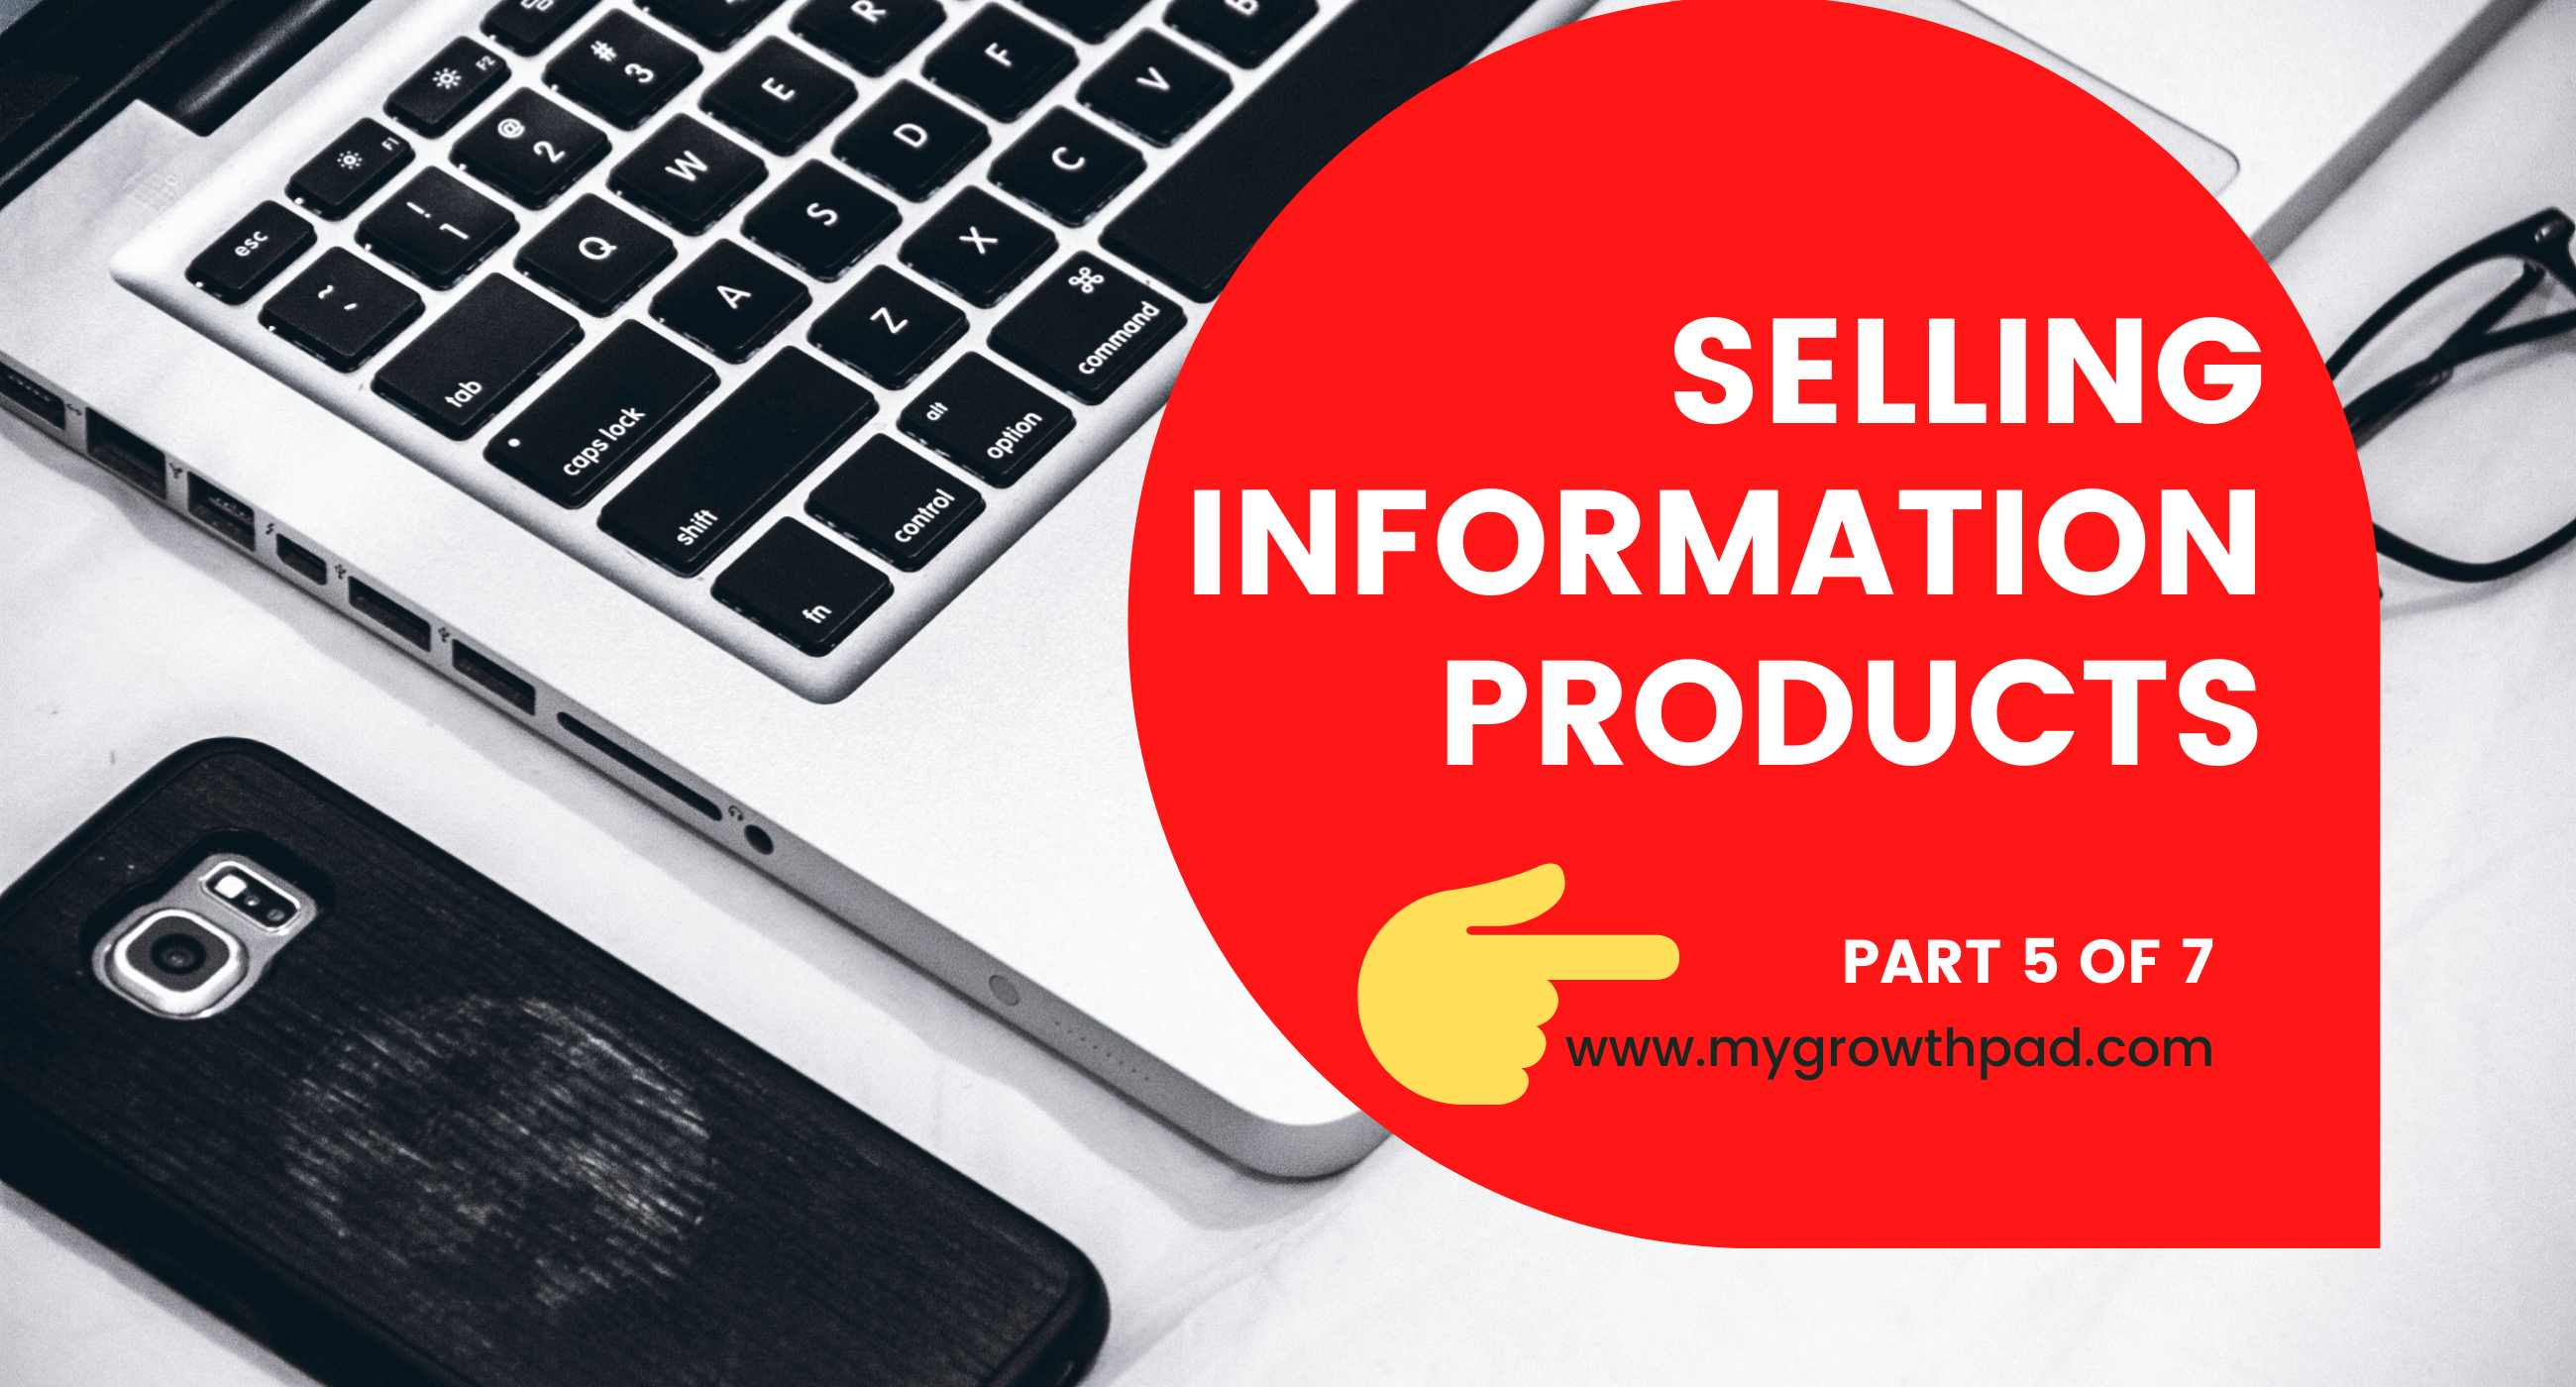 GETTING TRAFFIC: How To Make 6-Figures Selling Information Products Online (PART 5)